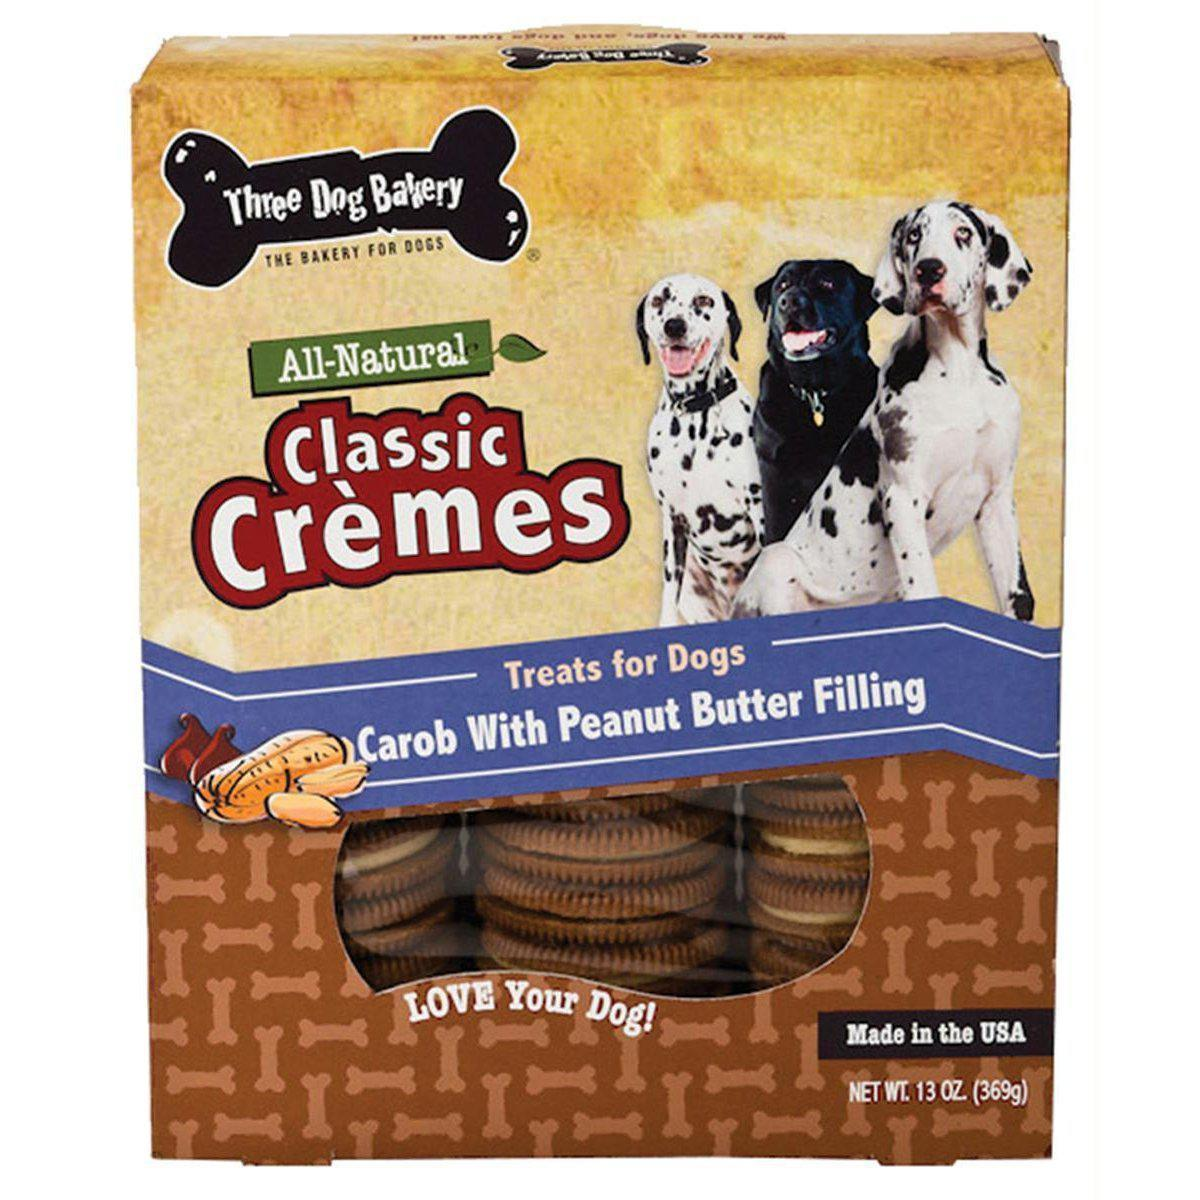 Classic Cremes All Natural Carob Cookies With Peanut Butter Filling Dog Treats 13Oz-Three Dog Bakery-DirtyFurClothing